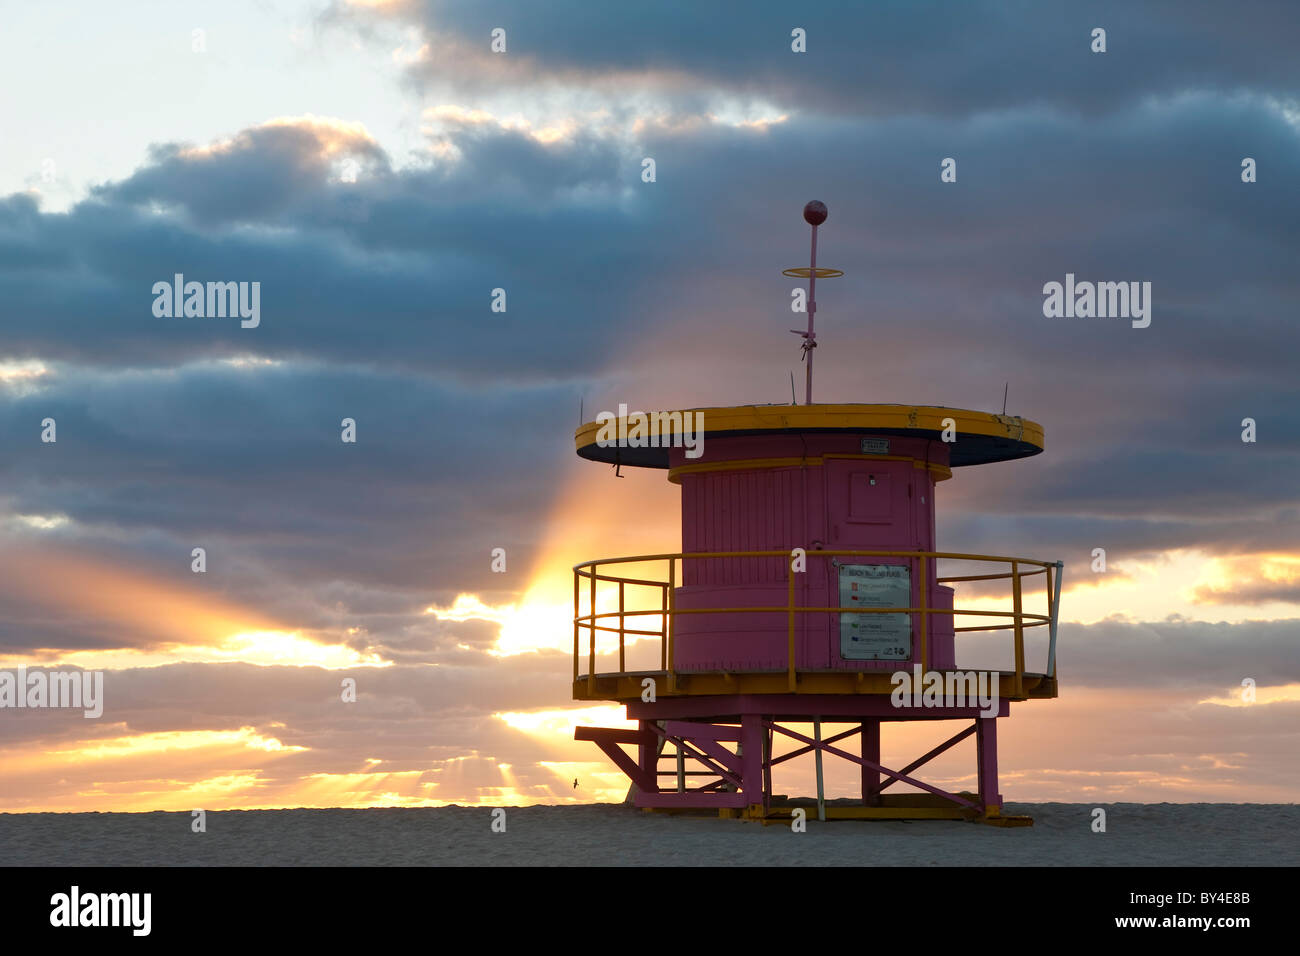 Lifeguard hut, South Beach, Miami, Floride, USA Photo Stock